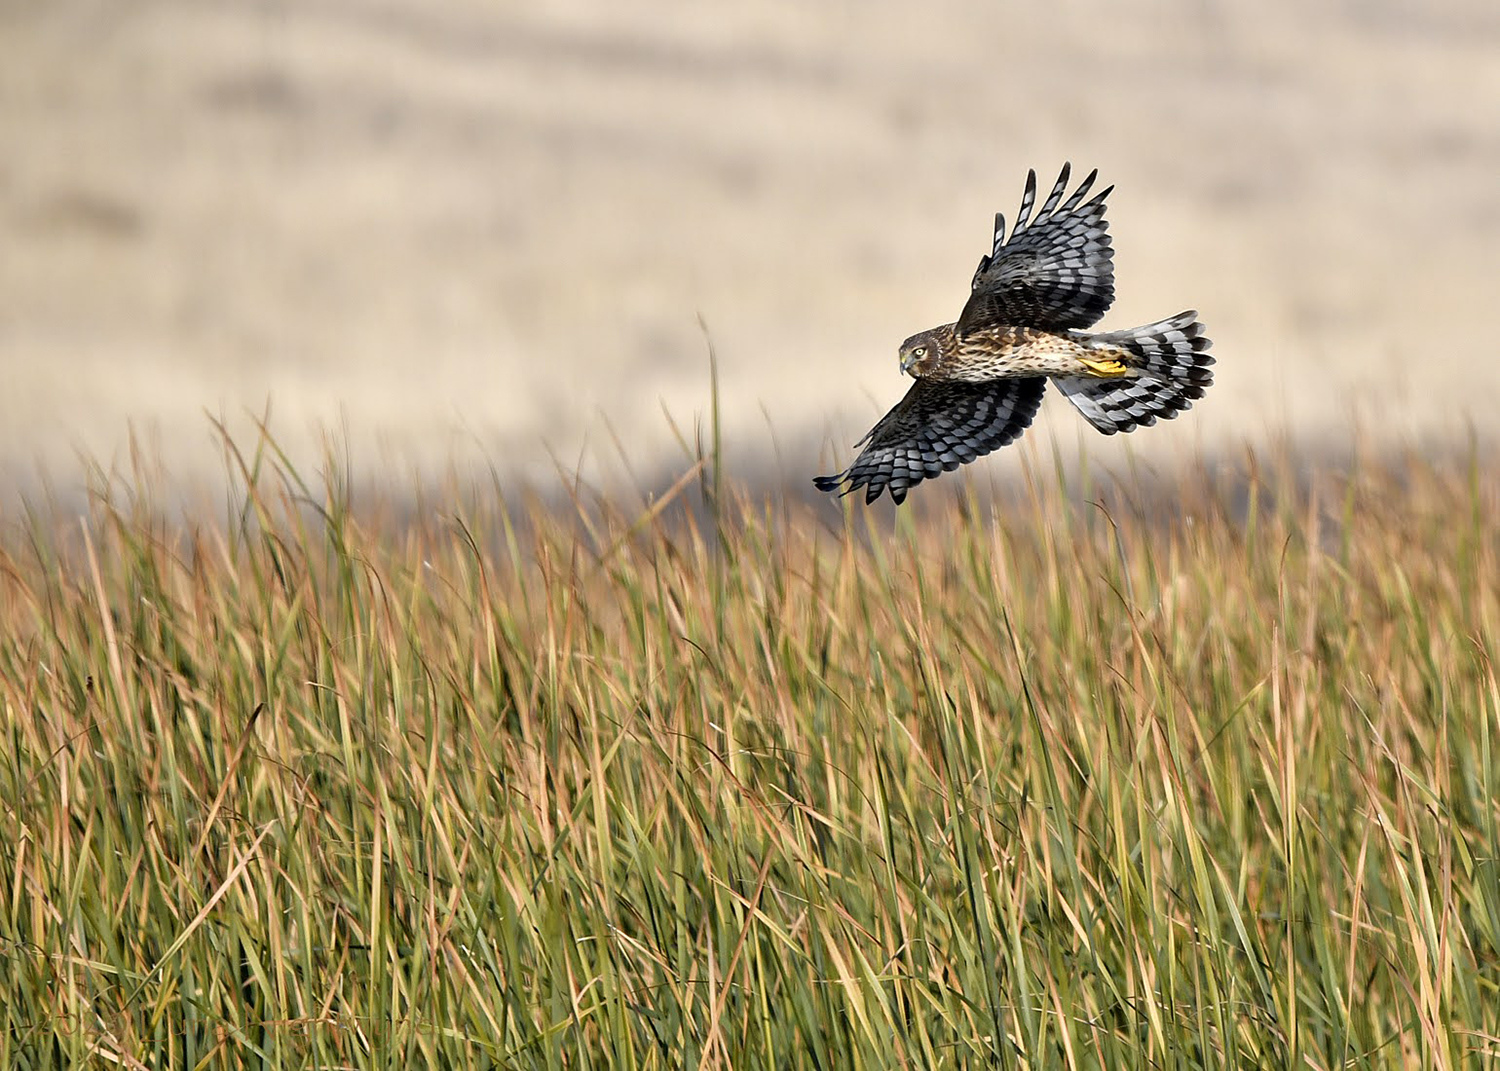 Northern Harrier by Sonja Beeve